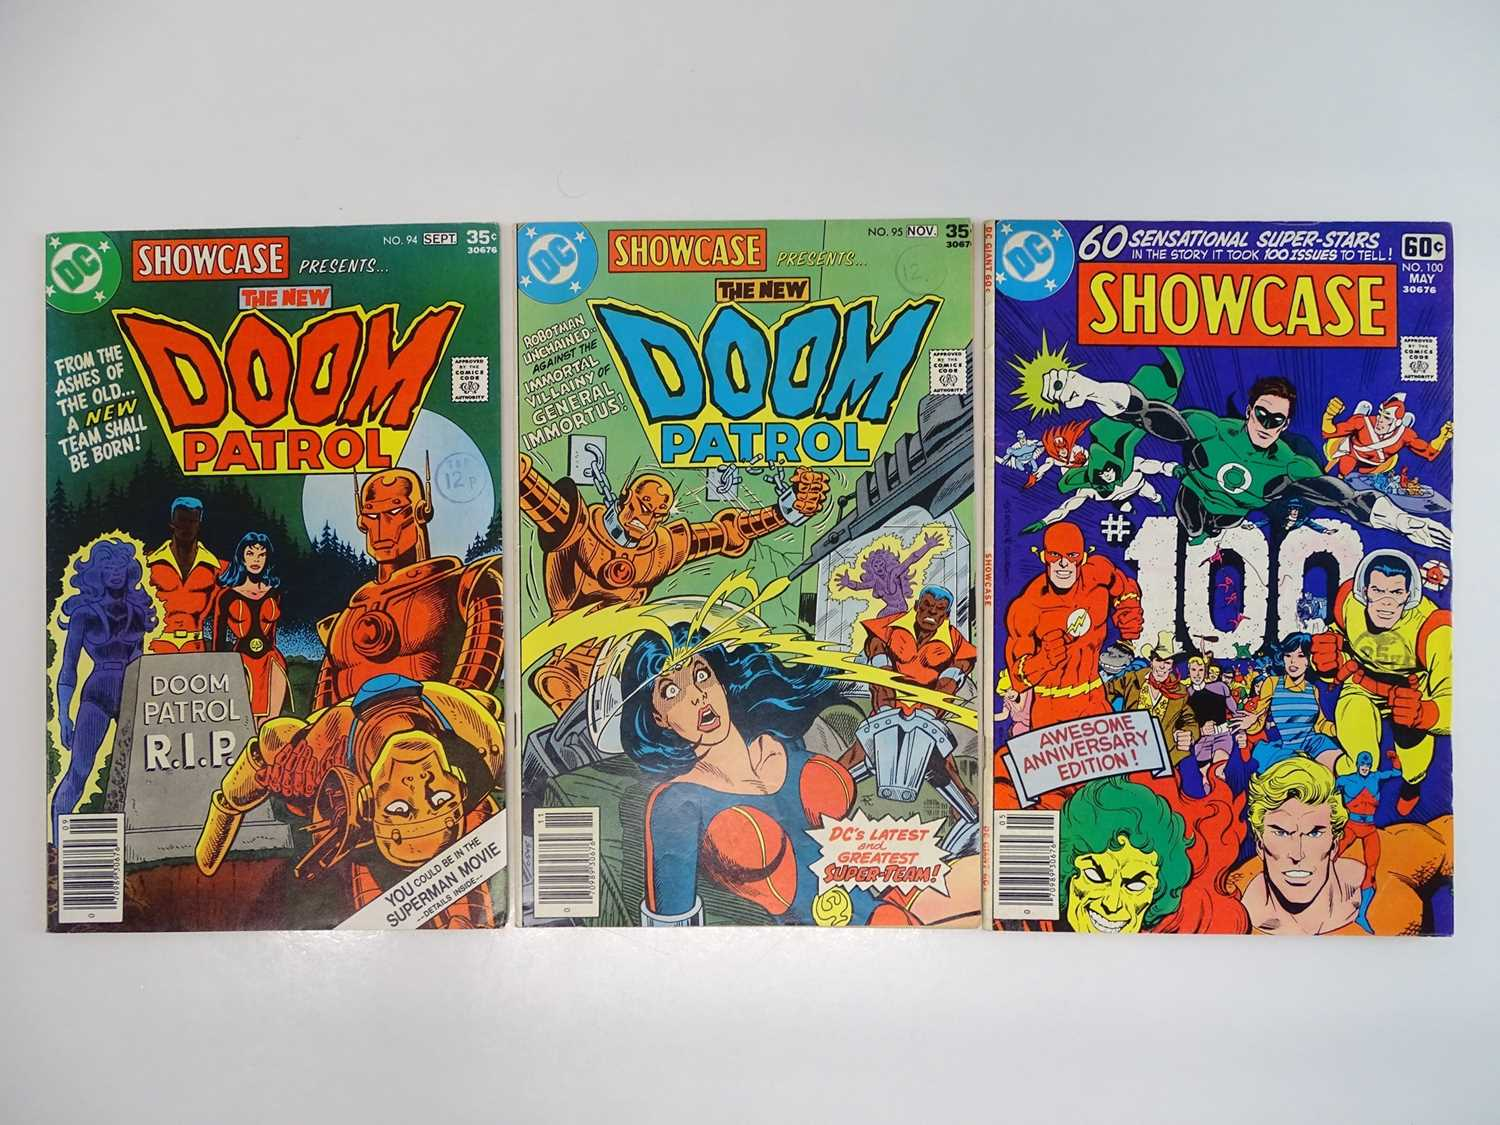 SHOWCASE #94, 95, 100 - (3 in Lot) - (1977/78 - DC - UK Cover Price) Includes Origin and First